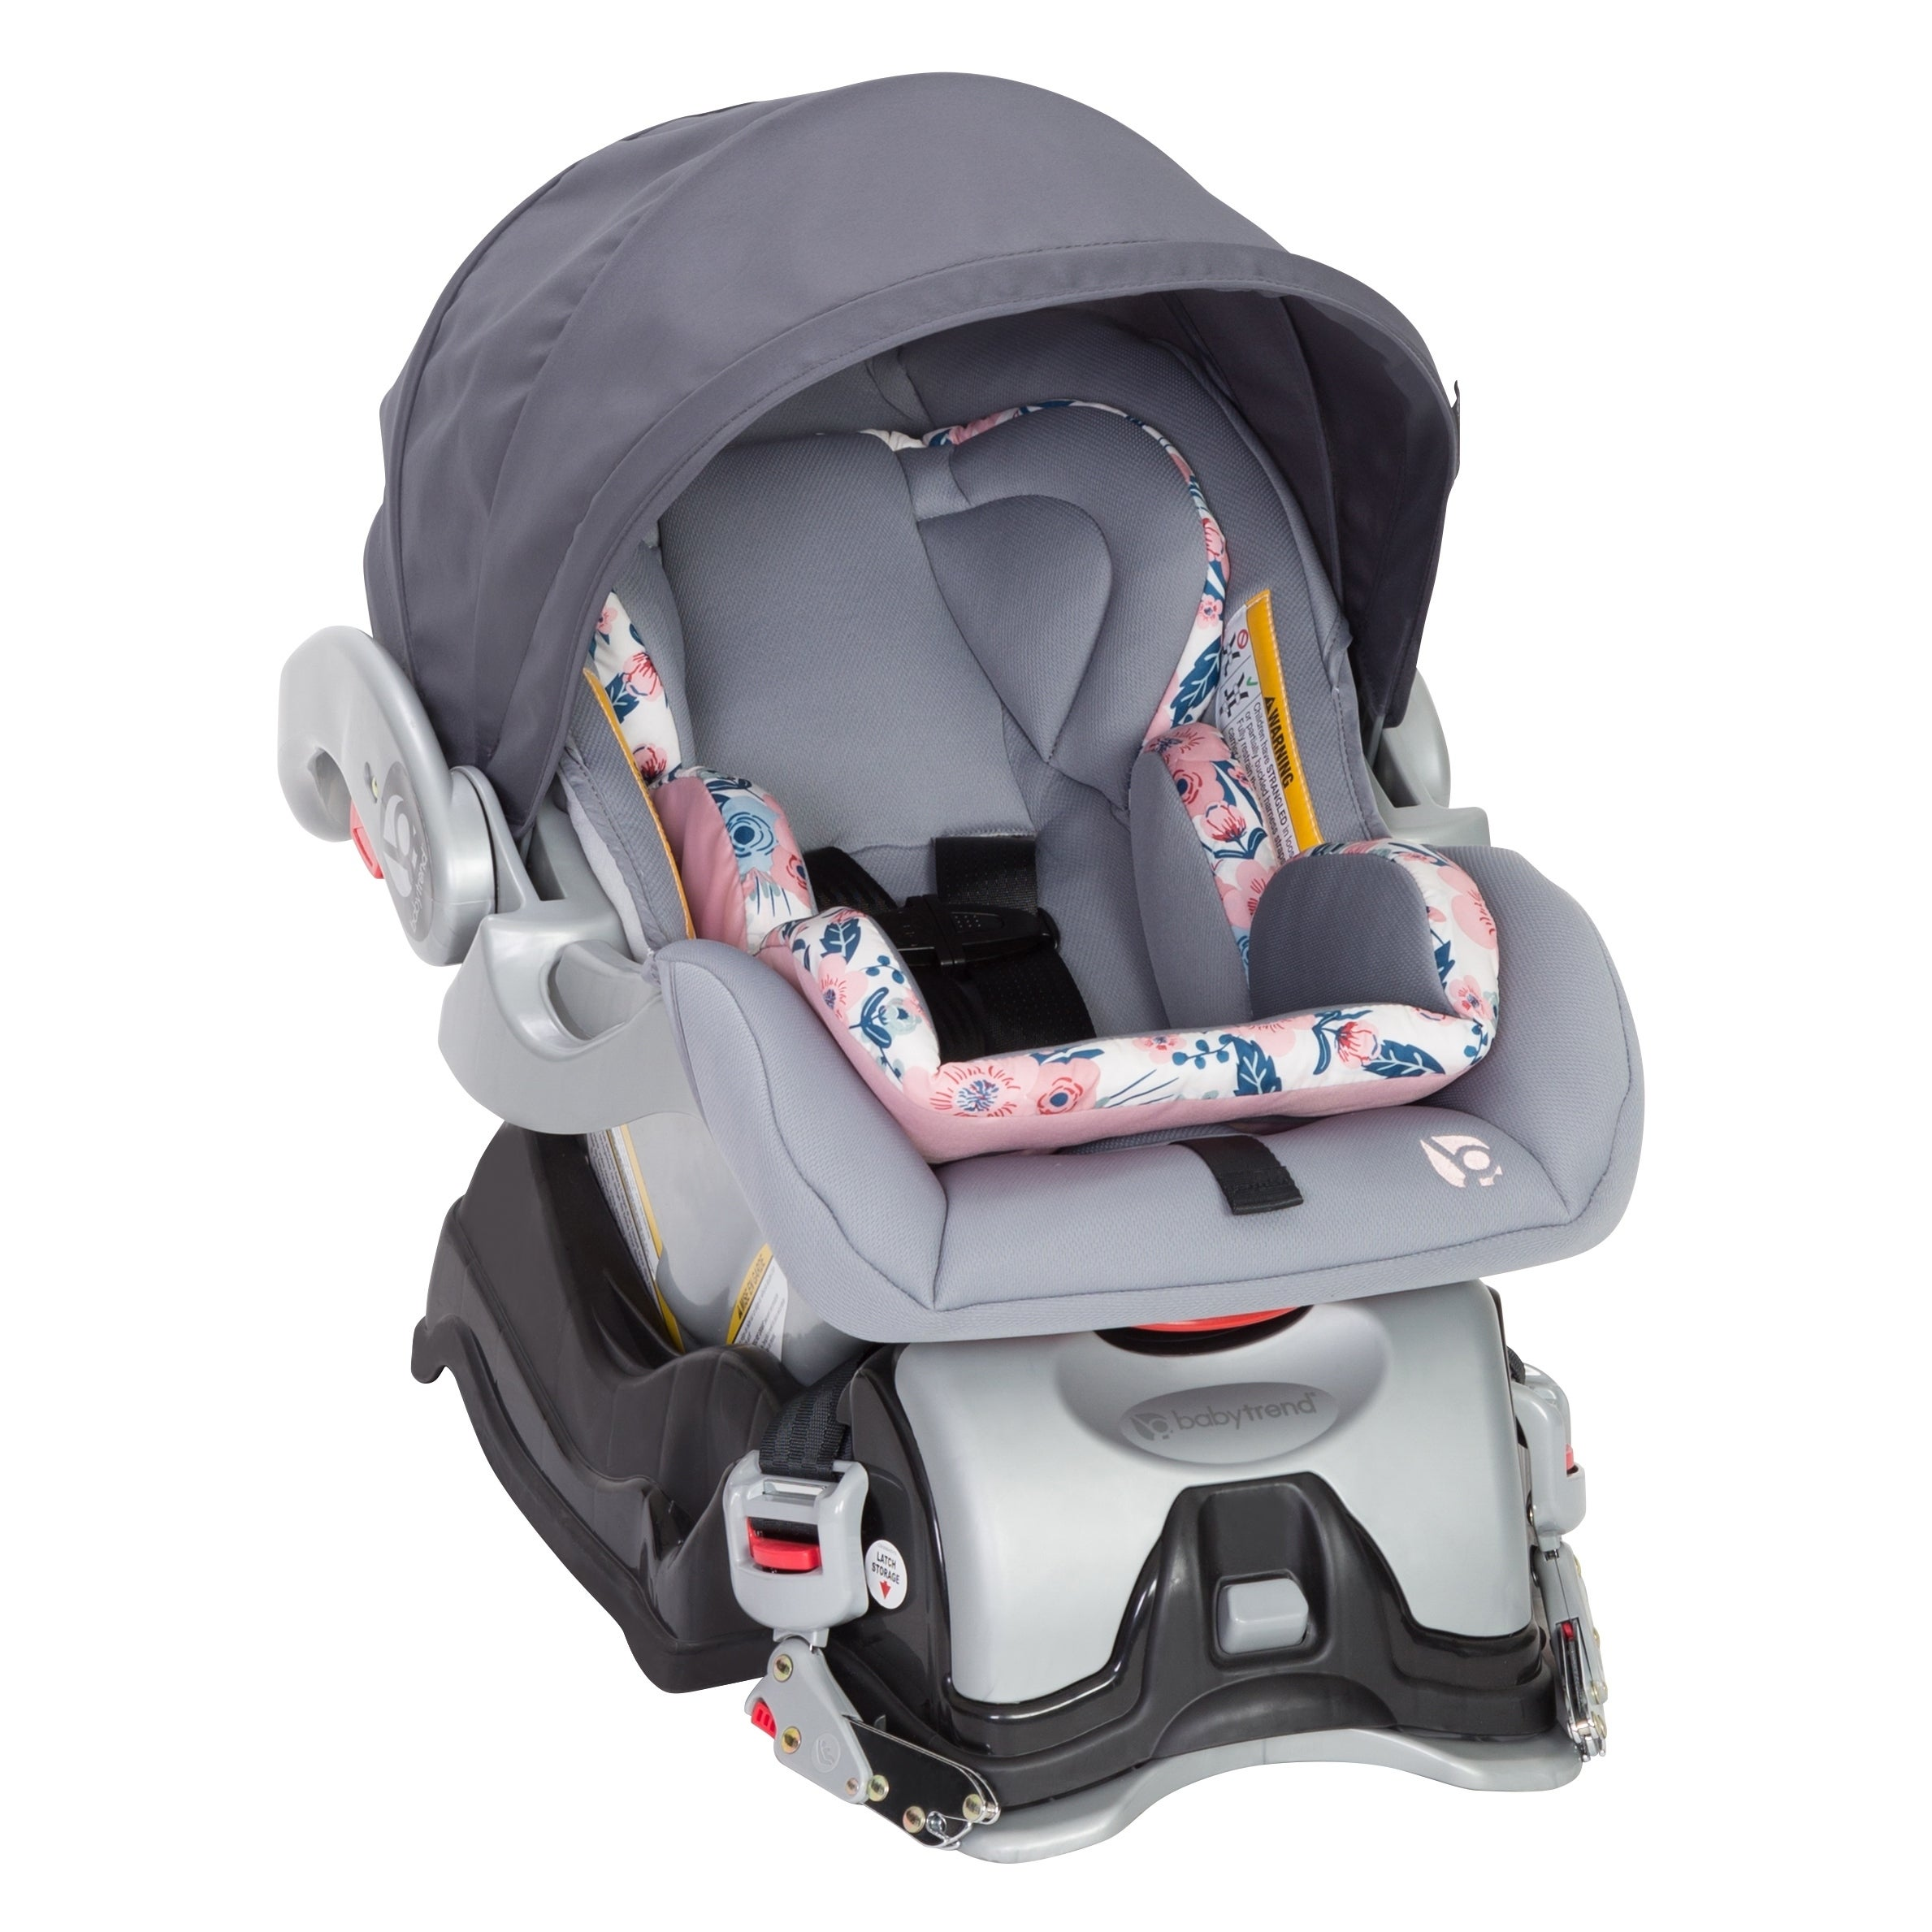 Shop Baby Trend Skyview Plus Travel System Blue Bell Overstock 23068867